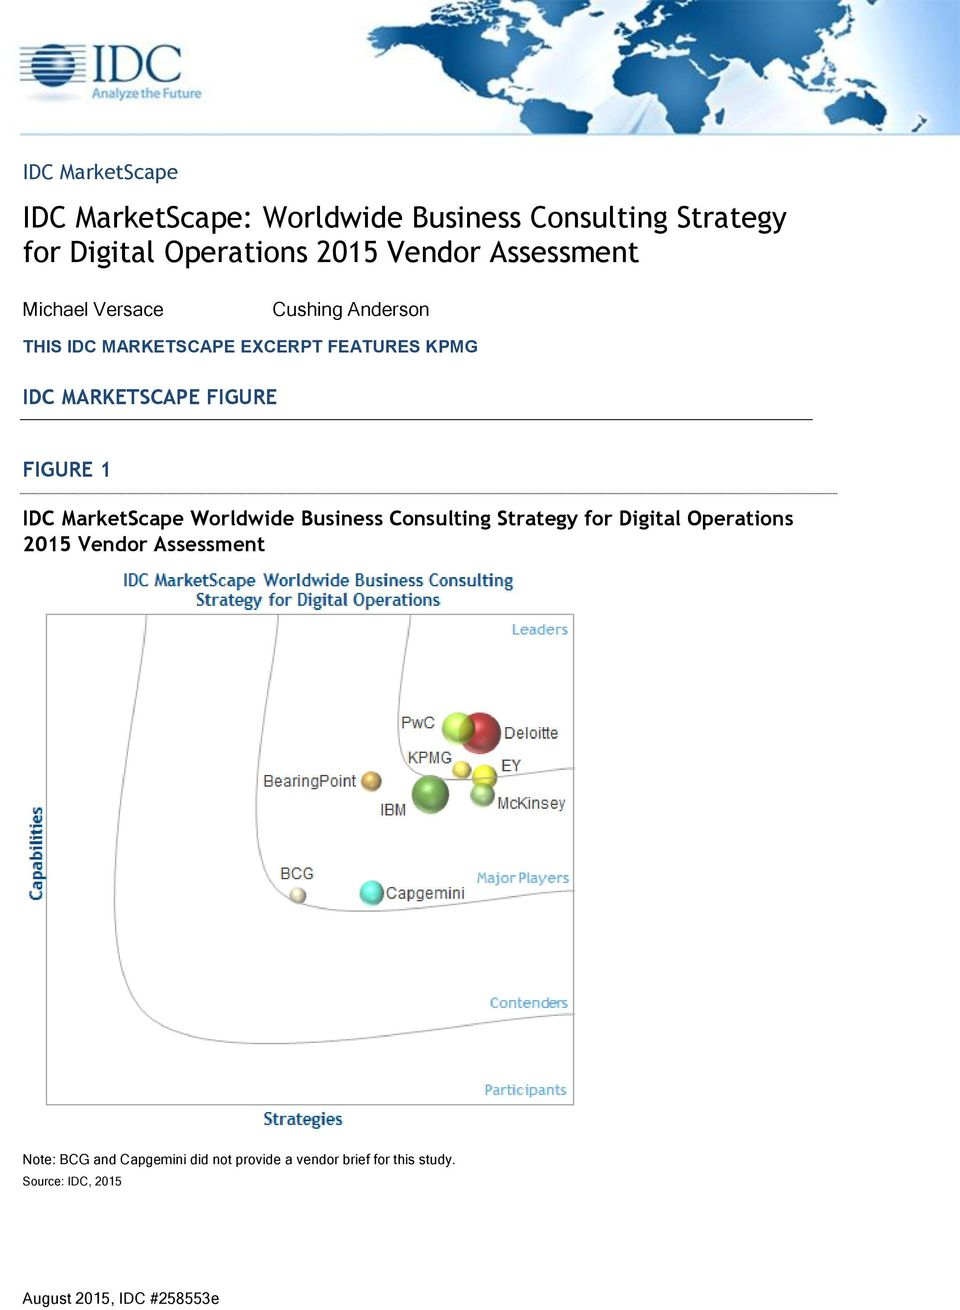 FIGURE 1 IDC MarketScape Worldwide Business Consulting Strategy for Digital Operations 2015 Vendor Assessment